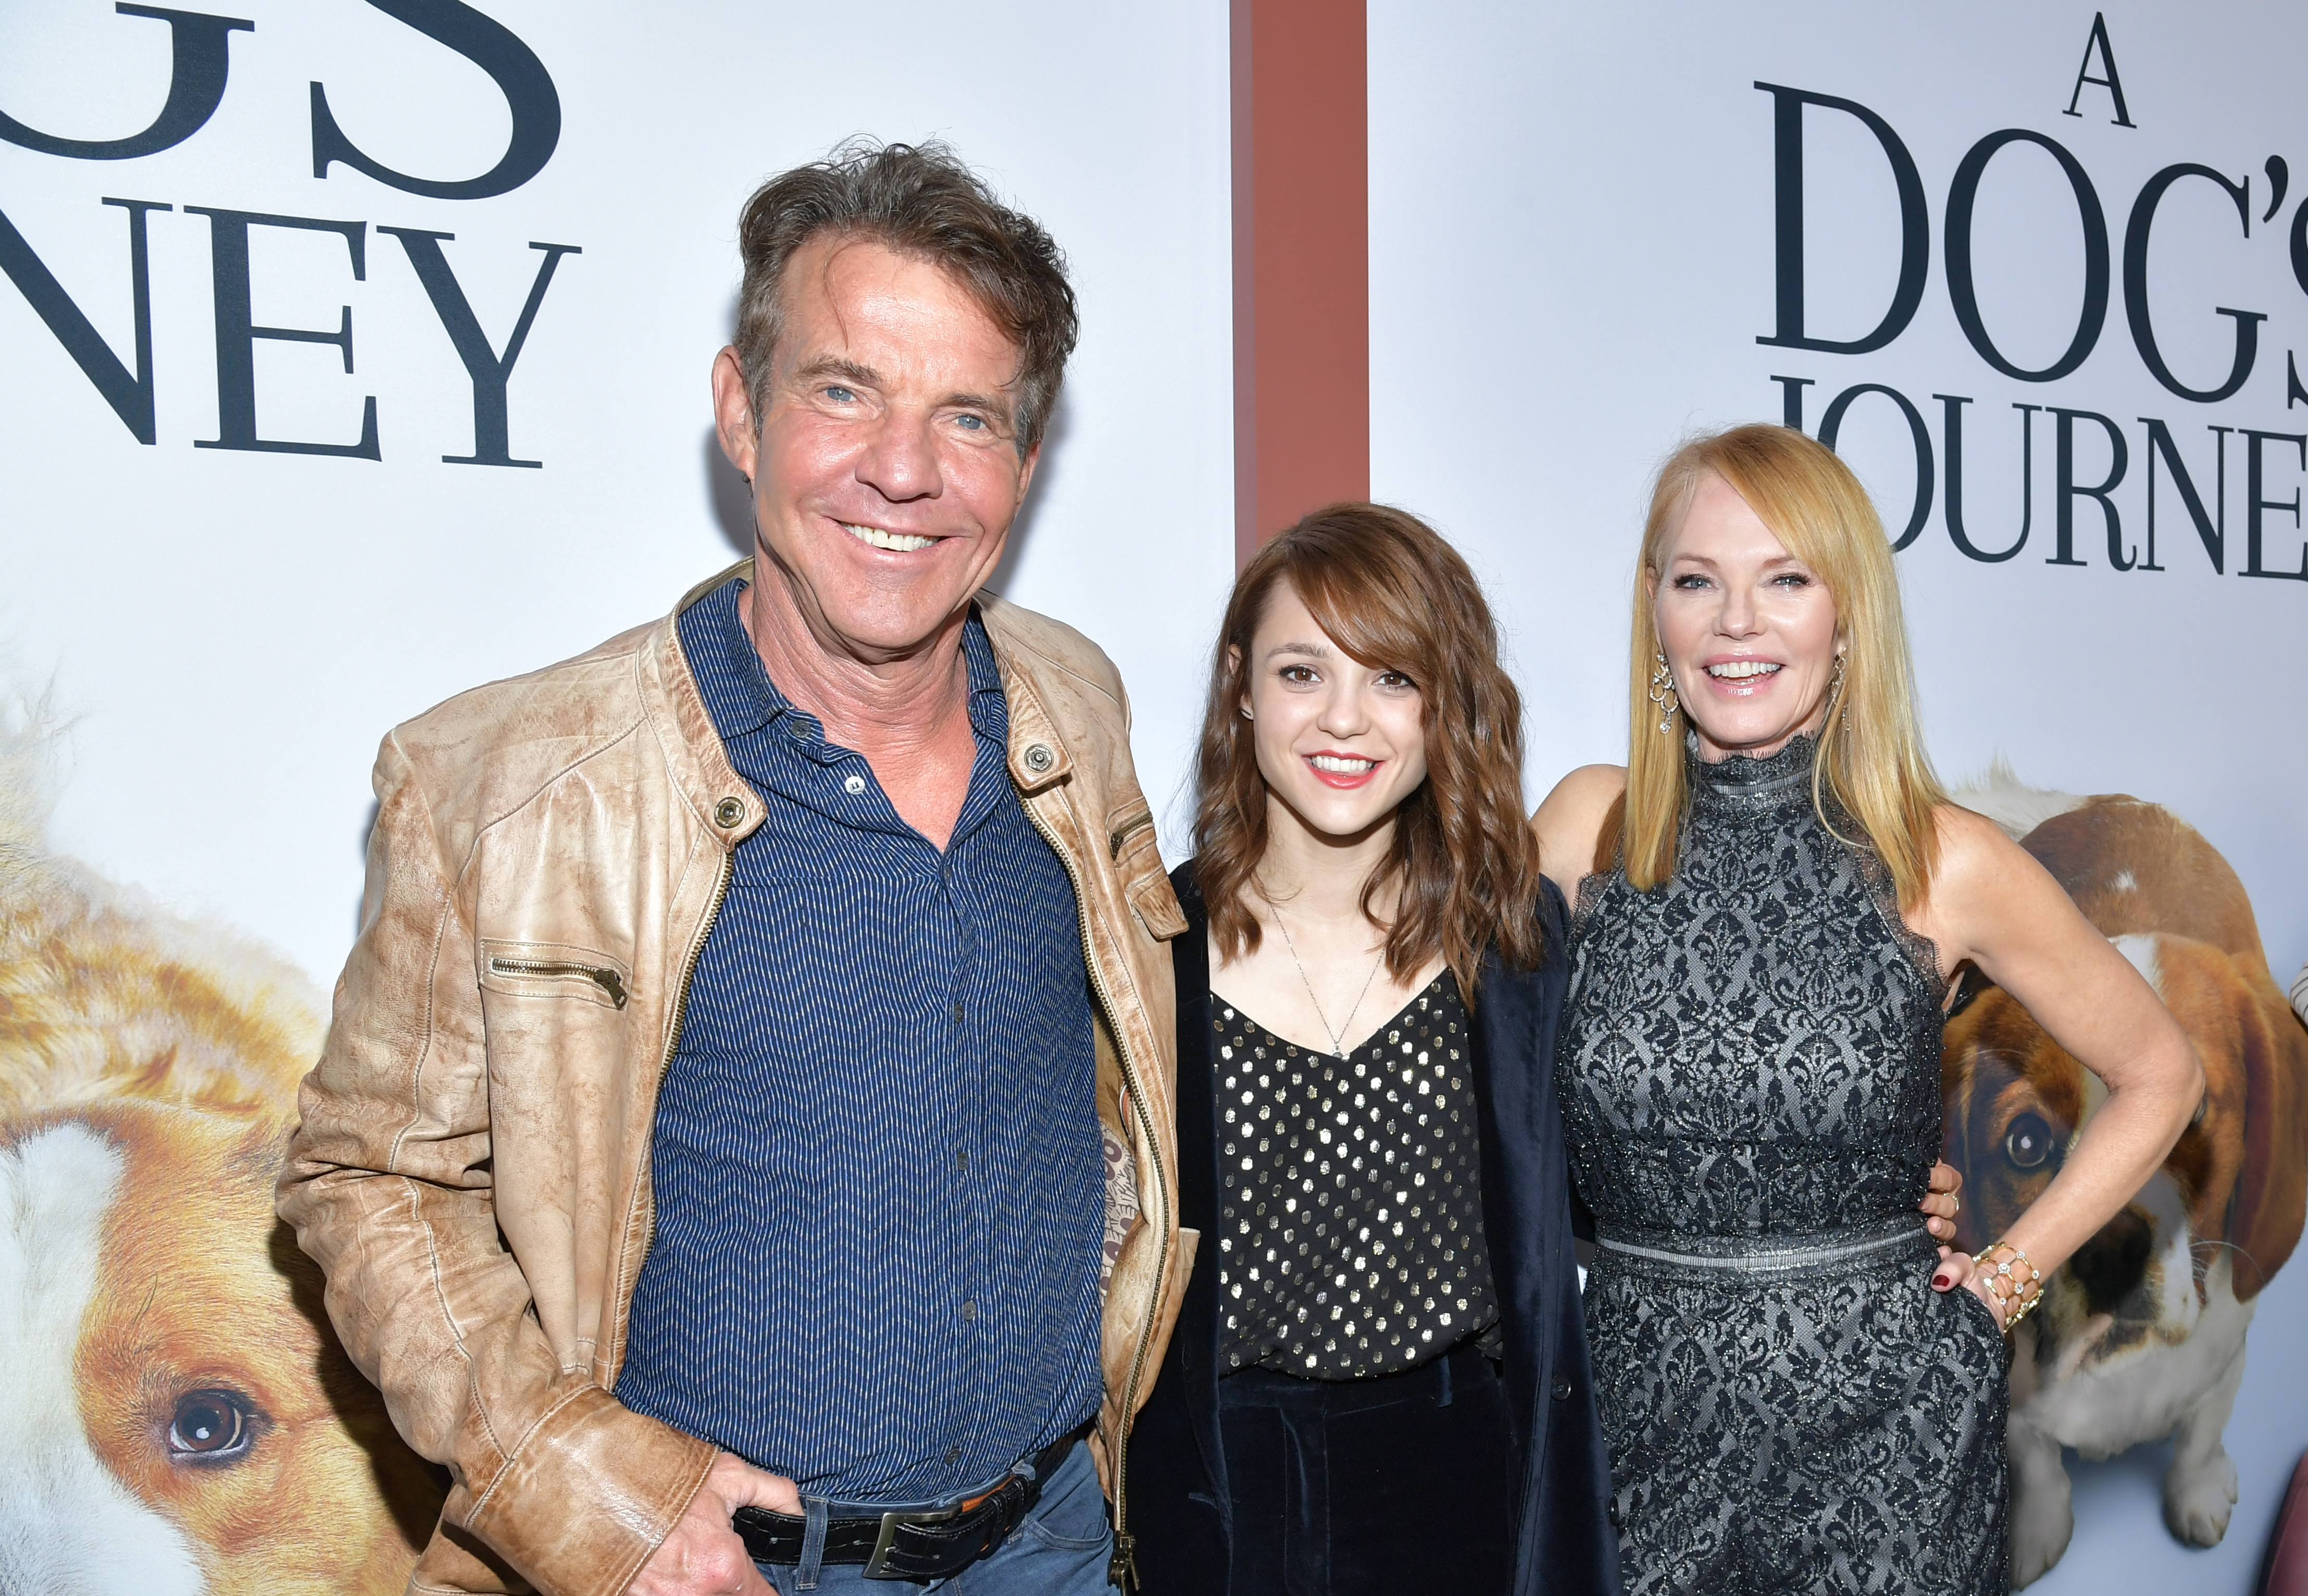 """Dennis Quaid, Kathryn Prescott and Marg Helgenberger attend the premiere of Universal Pictures' """"A Dog's Journey"""" at ArcLight Hollywood on May 09, 2019 in Hollywood, California."""